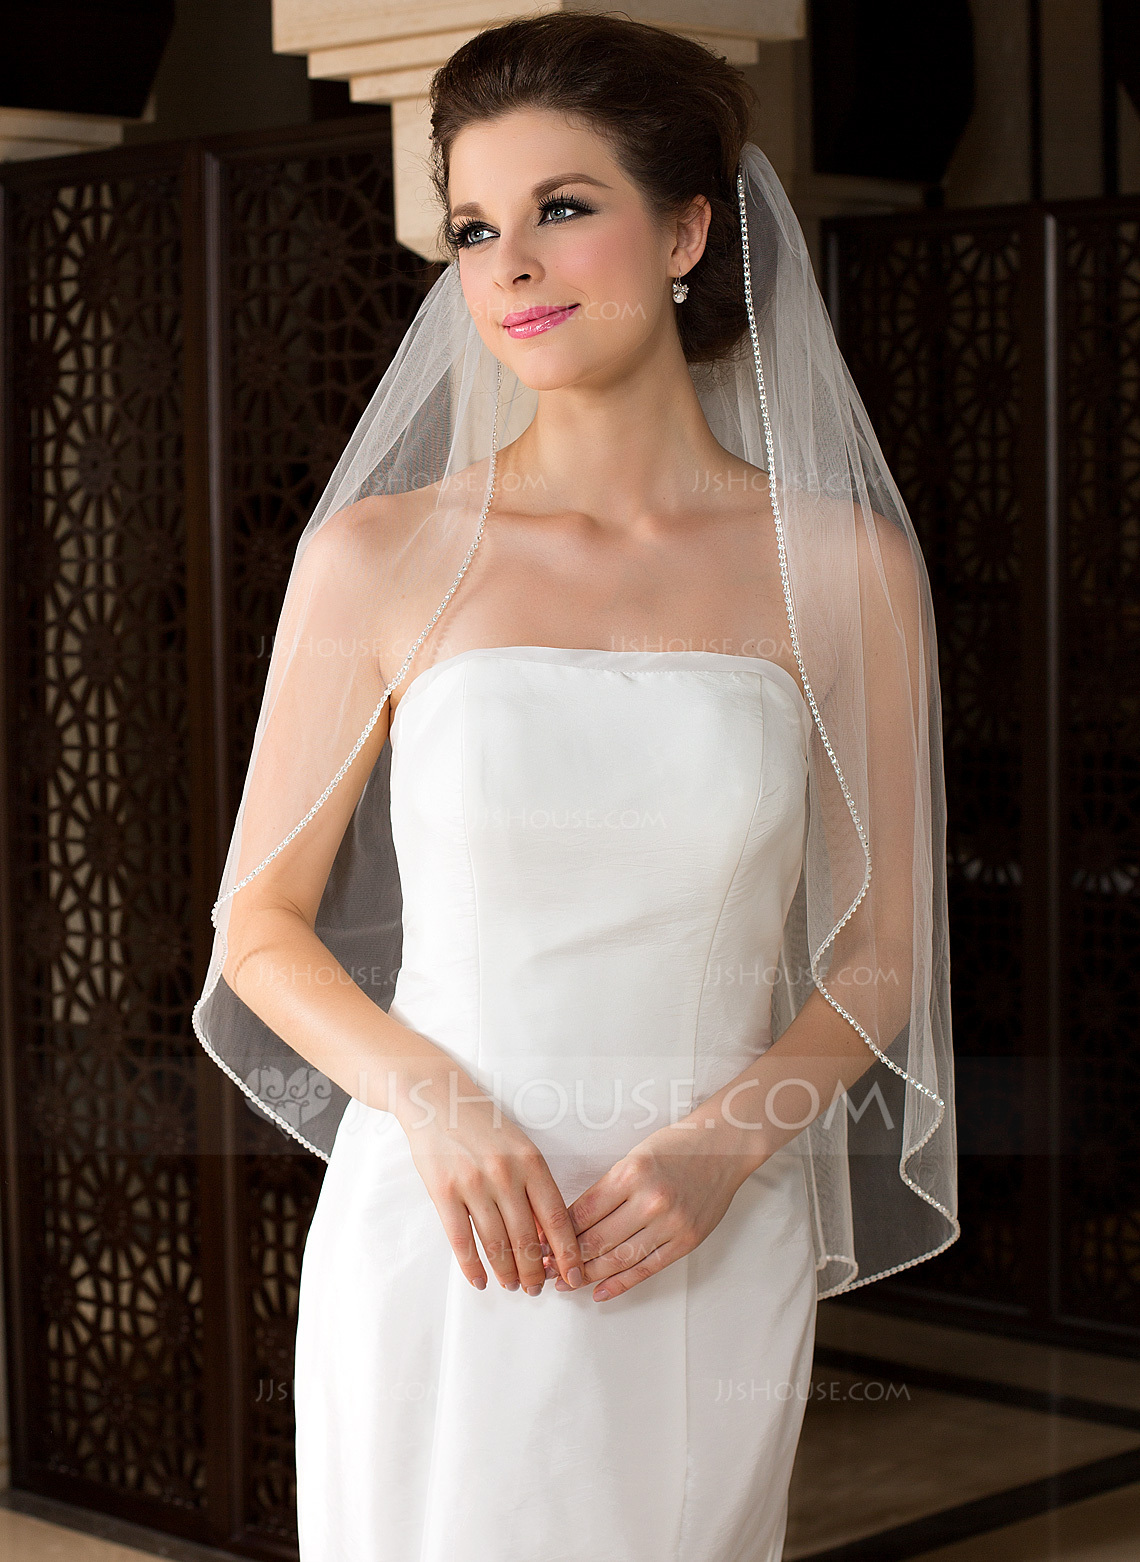 One Tier Fingertip Bridal Veils With Beaded Edge g wedding veils Wedding Veils Loading zoom